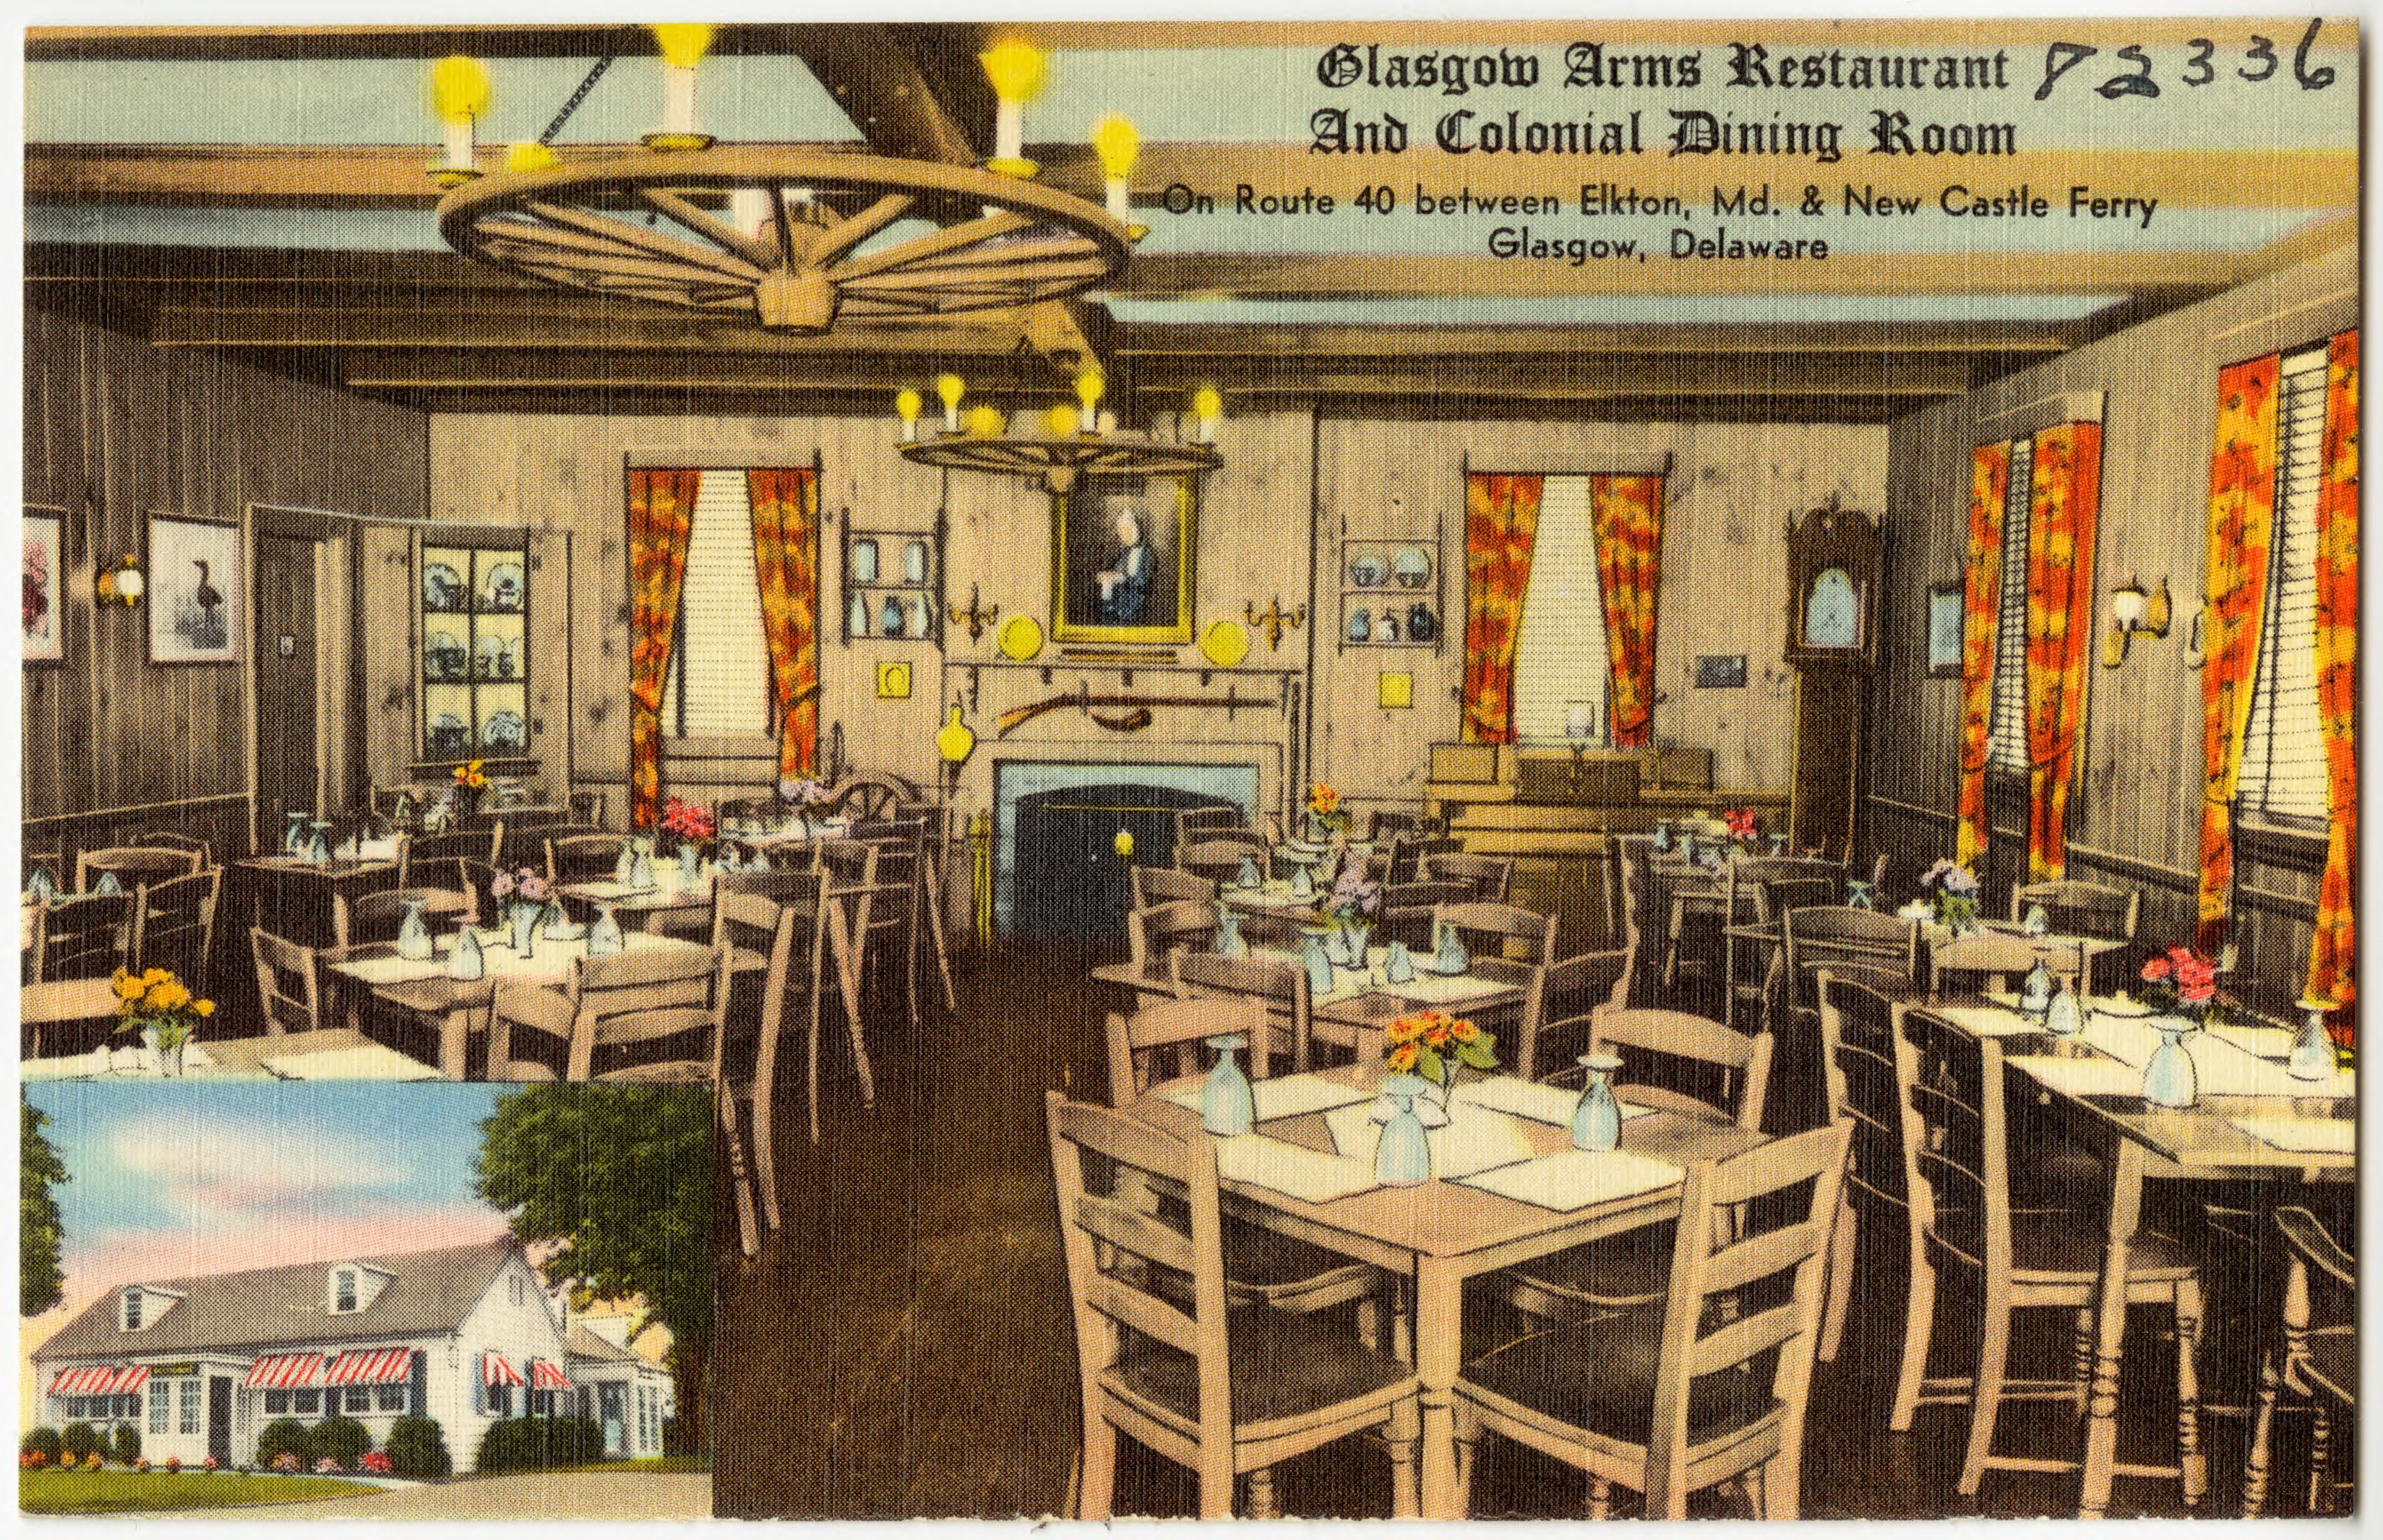 file:glasgow arms restaurant and colonial dining room on route 40